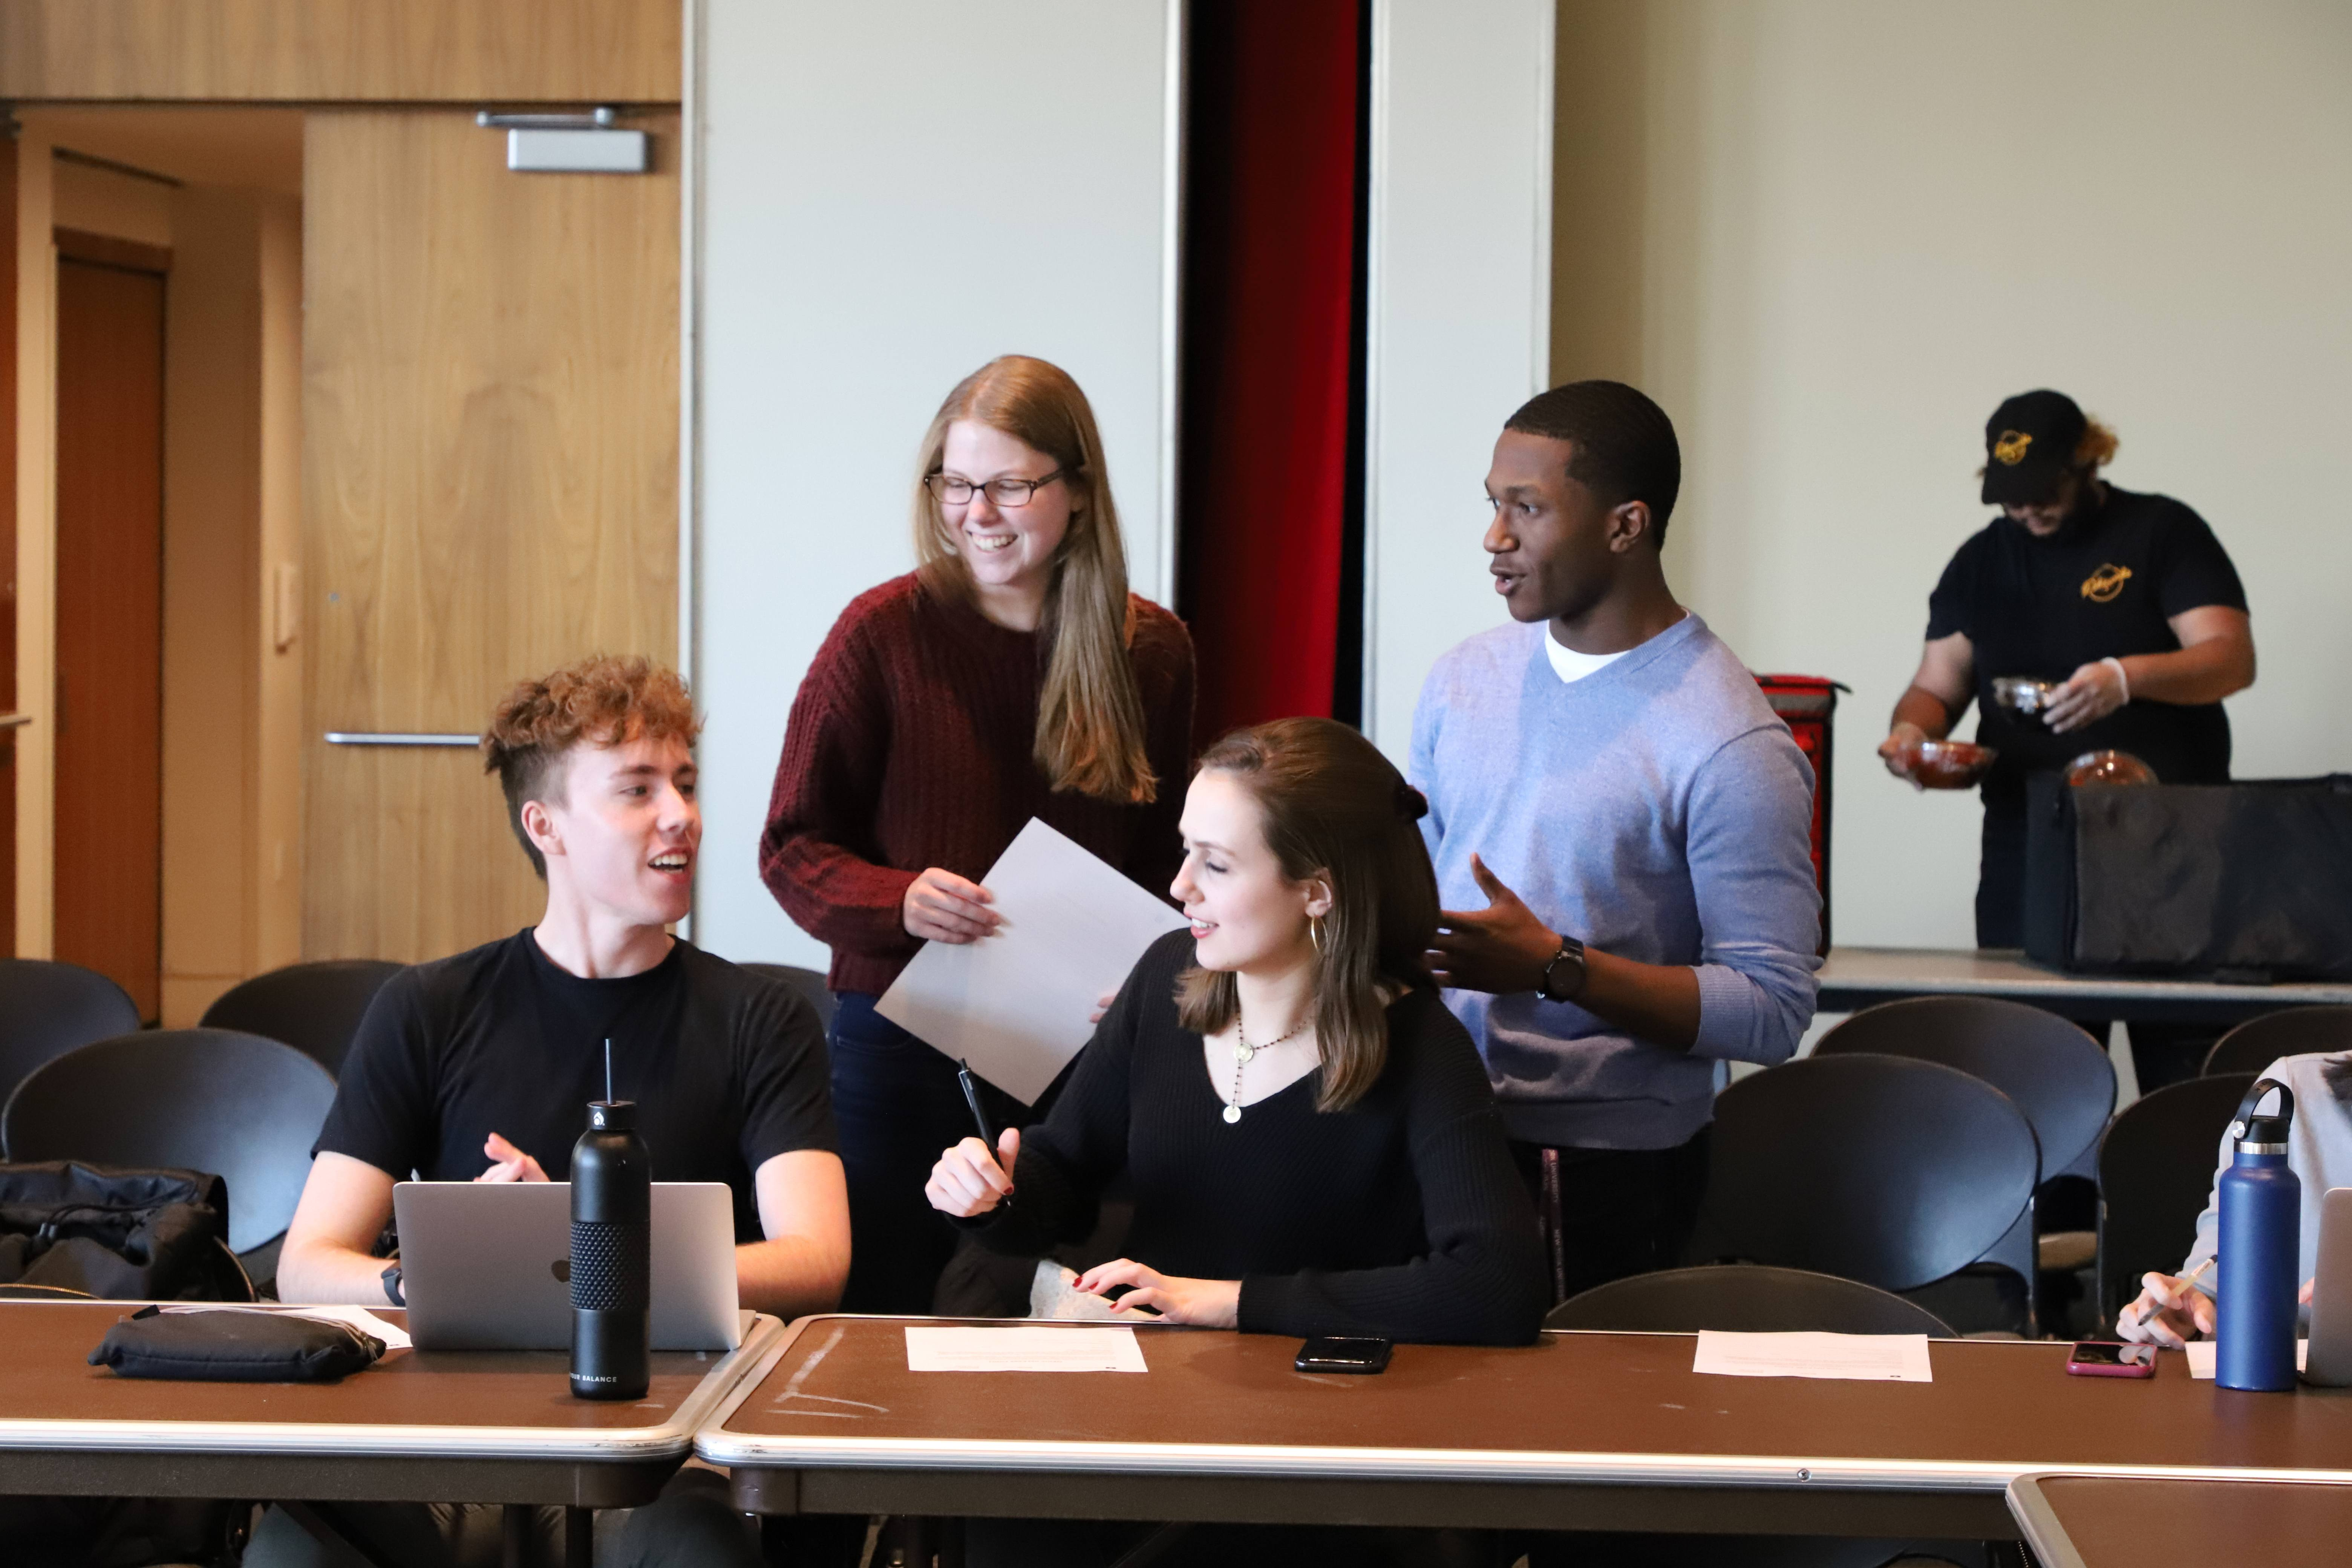 Four students working together at a table.